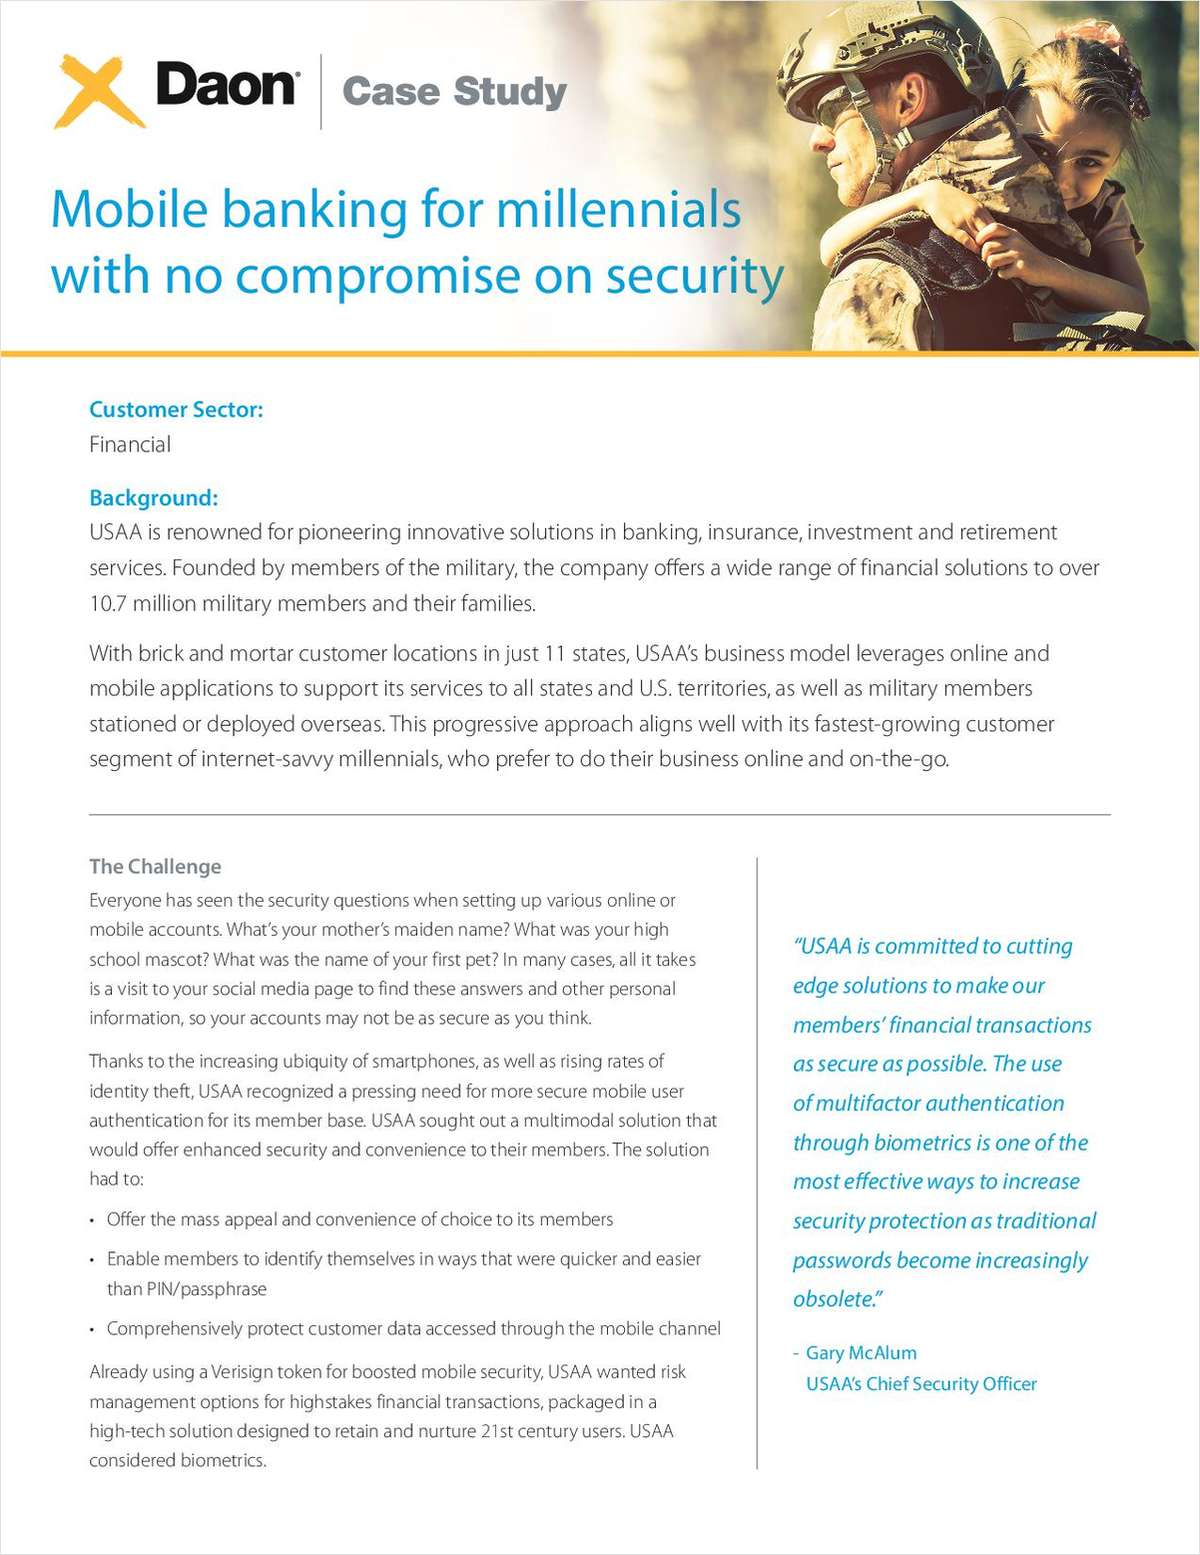 How USAA Delivers Mobile Banking for Millennials with No Compromise on Security